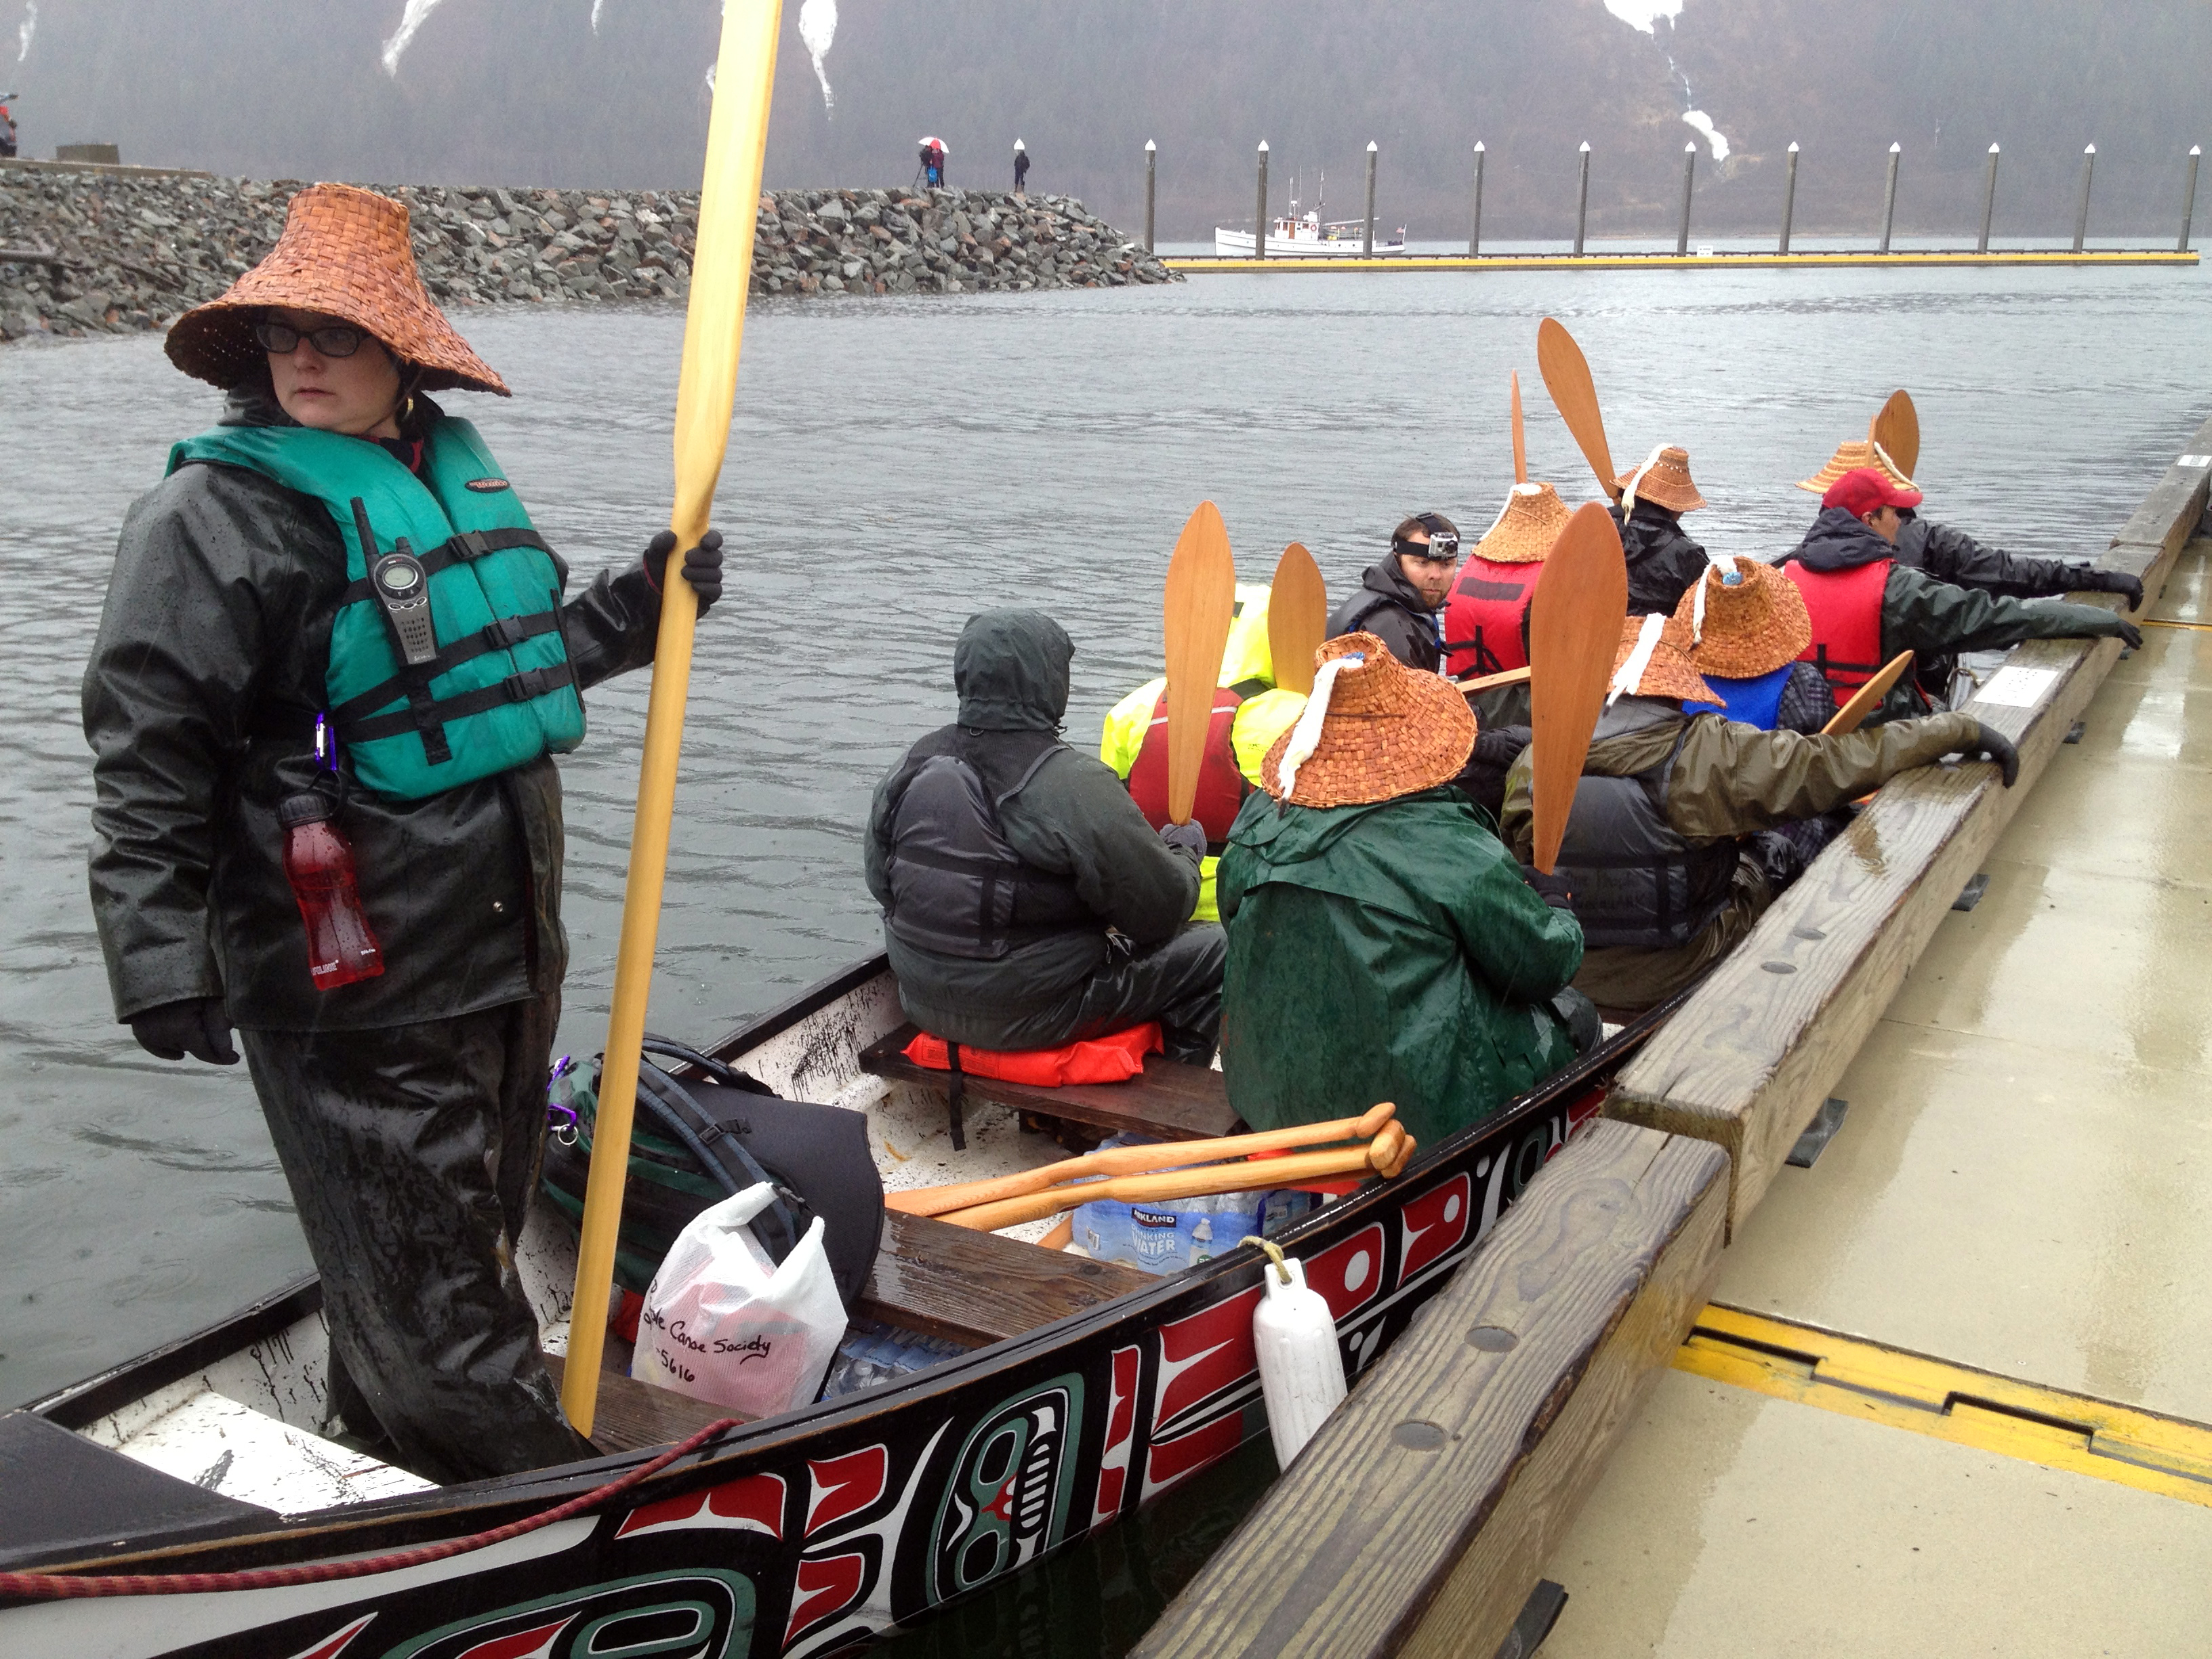 In Juneau on Tuesday, canoes were launched for an 8-day trip to Wrangell for the rededication of the Chief Shakes Clan House.